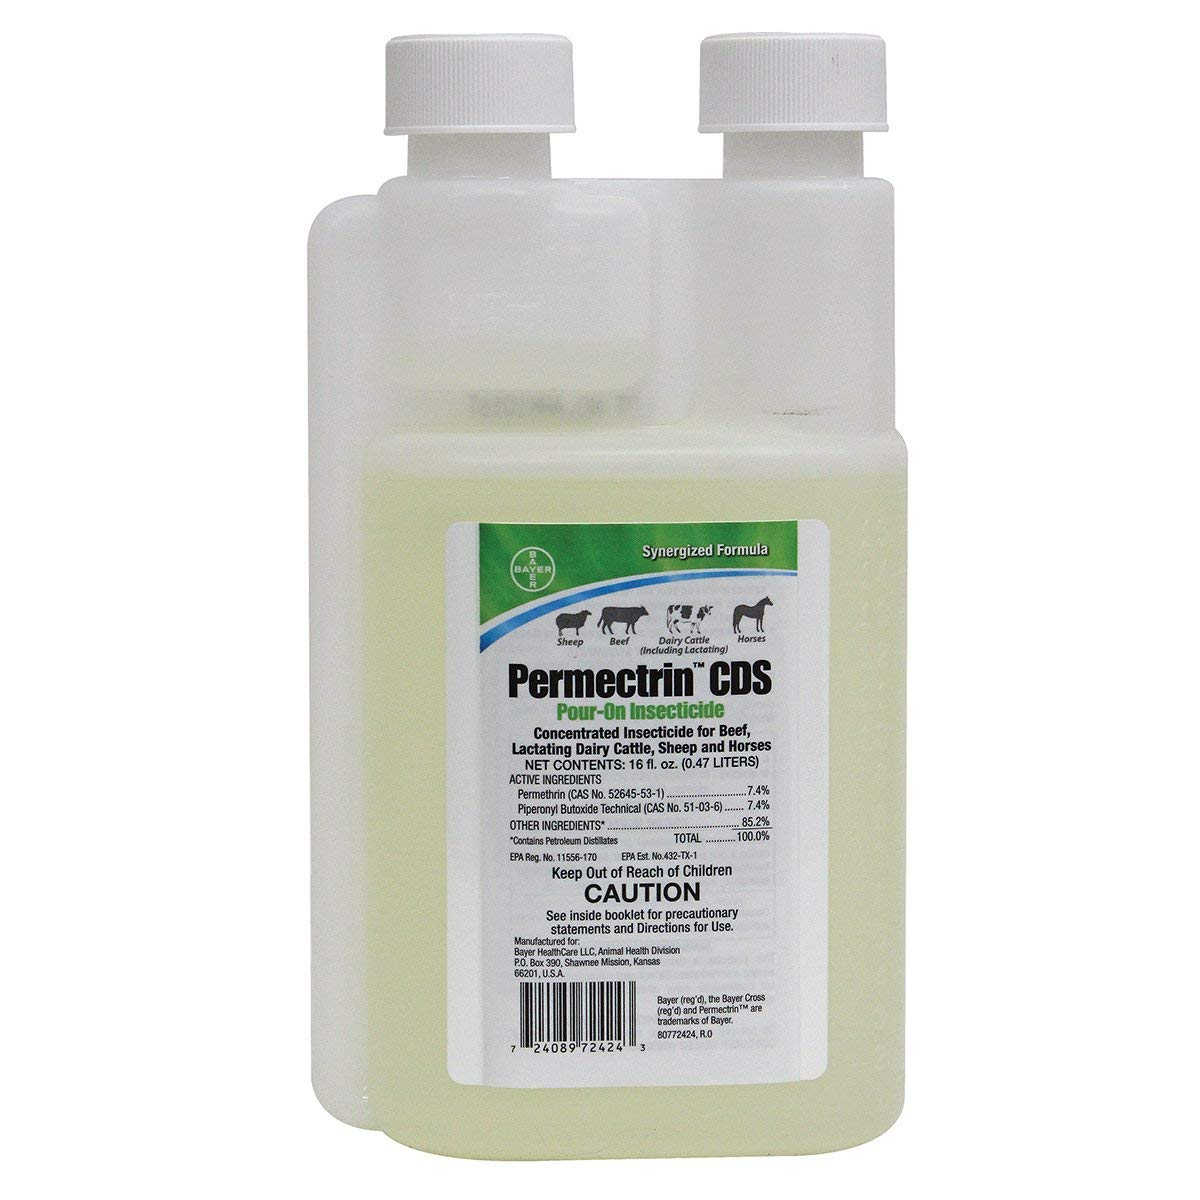 Bayer 16 Fl Oz Permectrin CDS Pour- On Insecticide Synergized Formula Beef Dairy Cattle Sheep Horses by Bayer